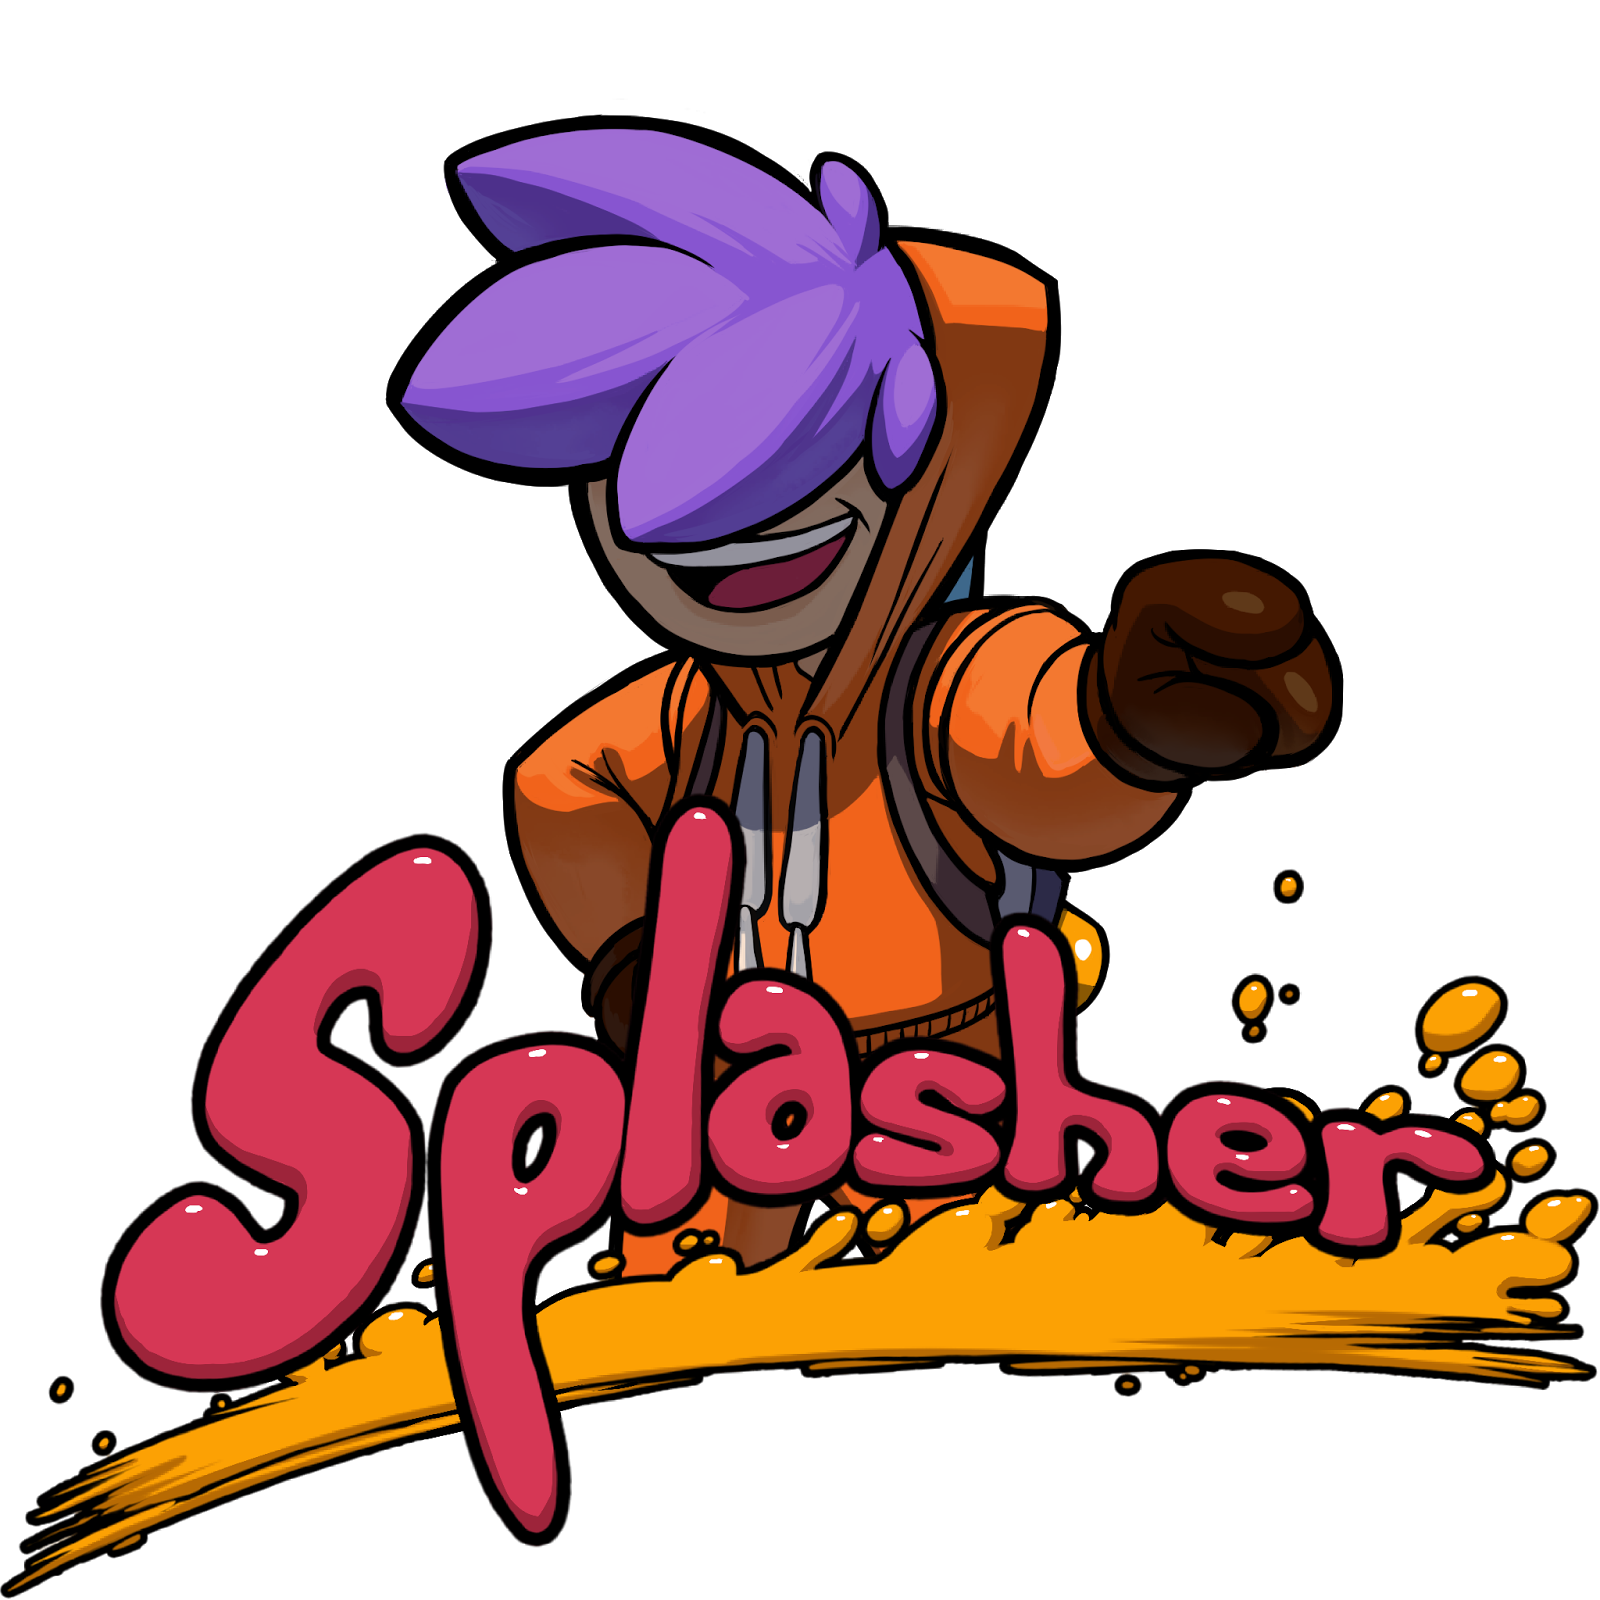 Tgs 2017 Splasher Switch Hands On Impressions Thefamicast Com Japan Based Nintendo Podcasts Videos Reviews